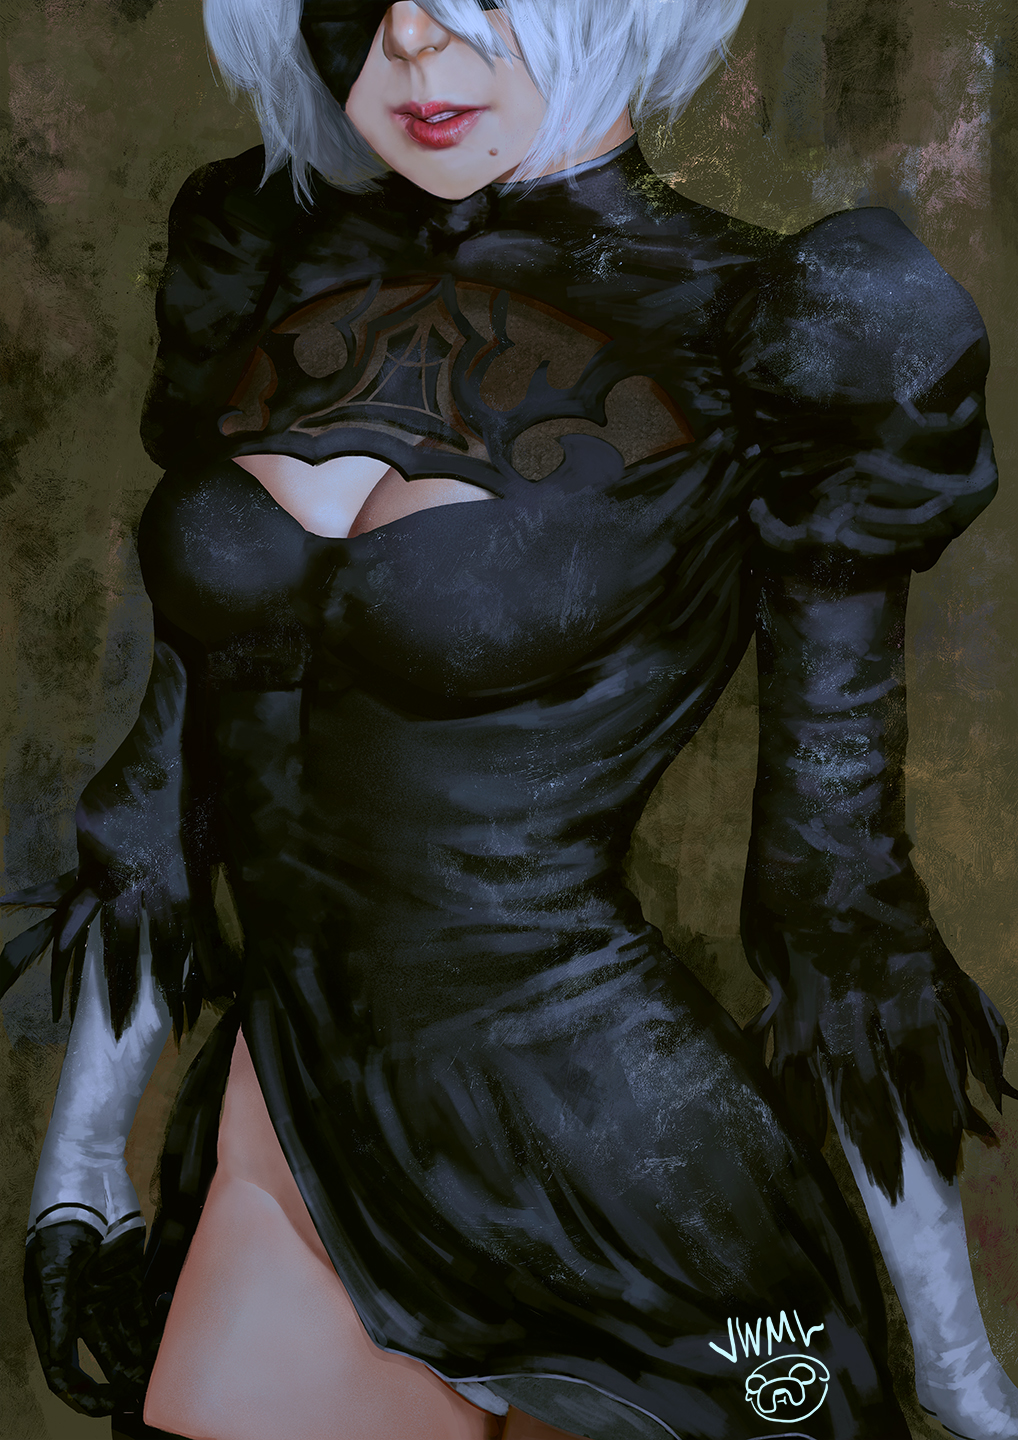 1girl artist_logo black_blindfold black_dress black_legwear blindfold breasts cleavage cleavage_cutout dress gloves groin highres large_breasts lips long_sleeves mole mole_under_mouth nier_(series) nier_automata no_leotard nose parted_lips red_;lips red_lips short_hair solo standing steamy_tomato teeth thigh-highs white_hair yorha_no._2_type_b